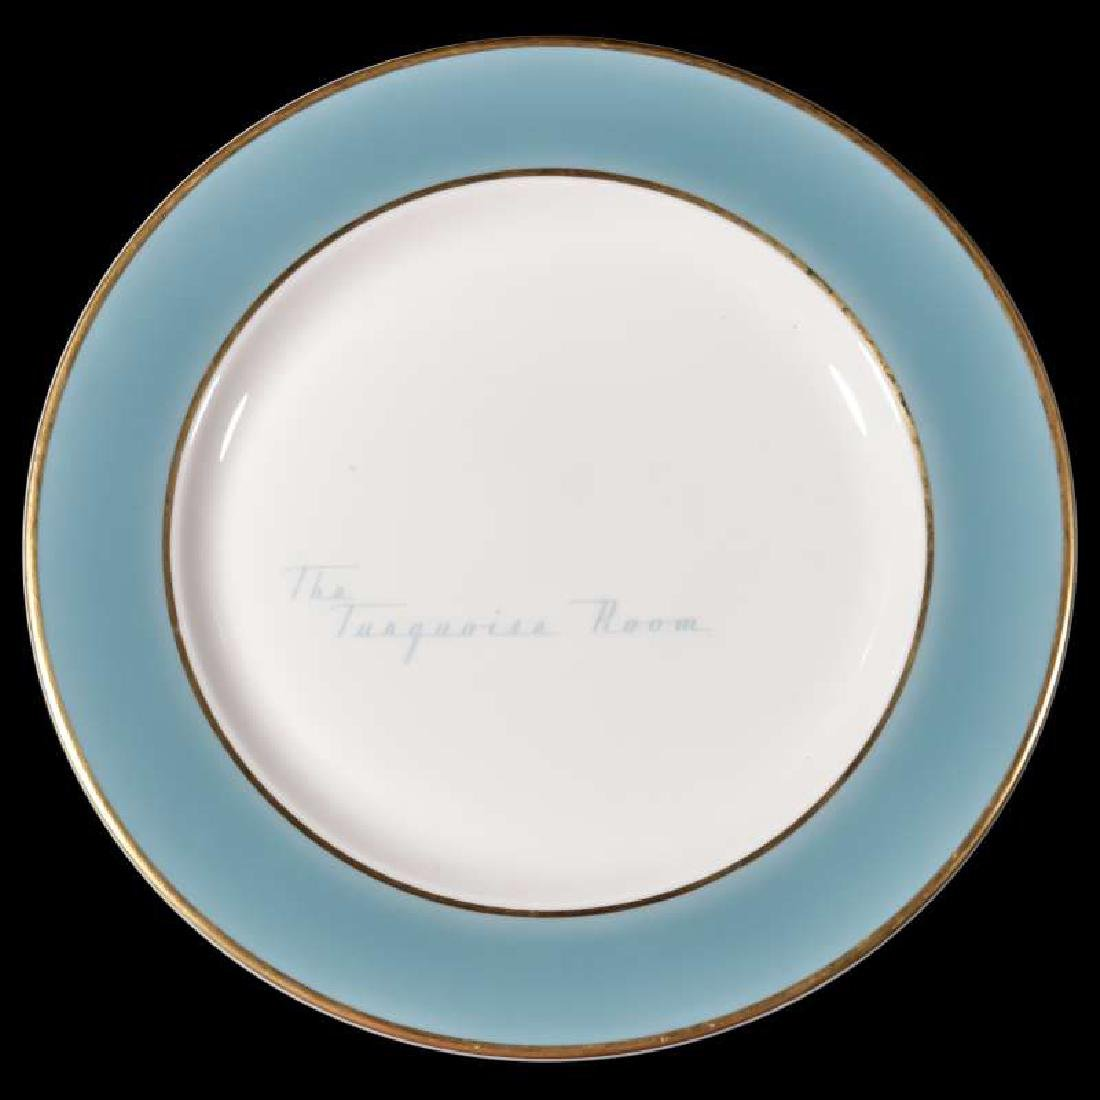 A SCARCE SANTA FE RR u0027TURQUOISE ROOMu0027 DINNER PLATE & Soulis Auctions - The Lewis Collection of Antique Railroadiana